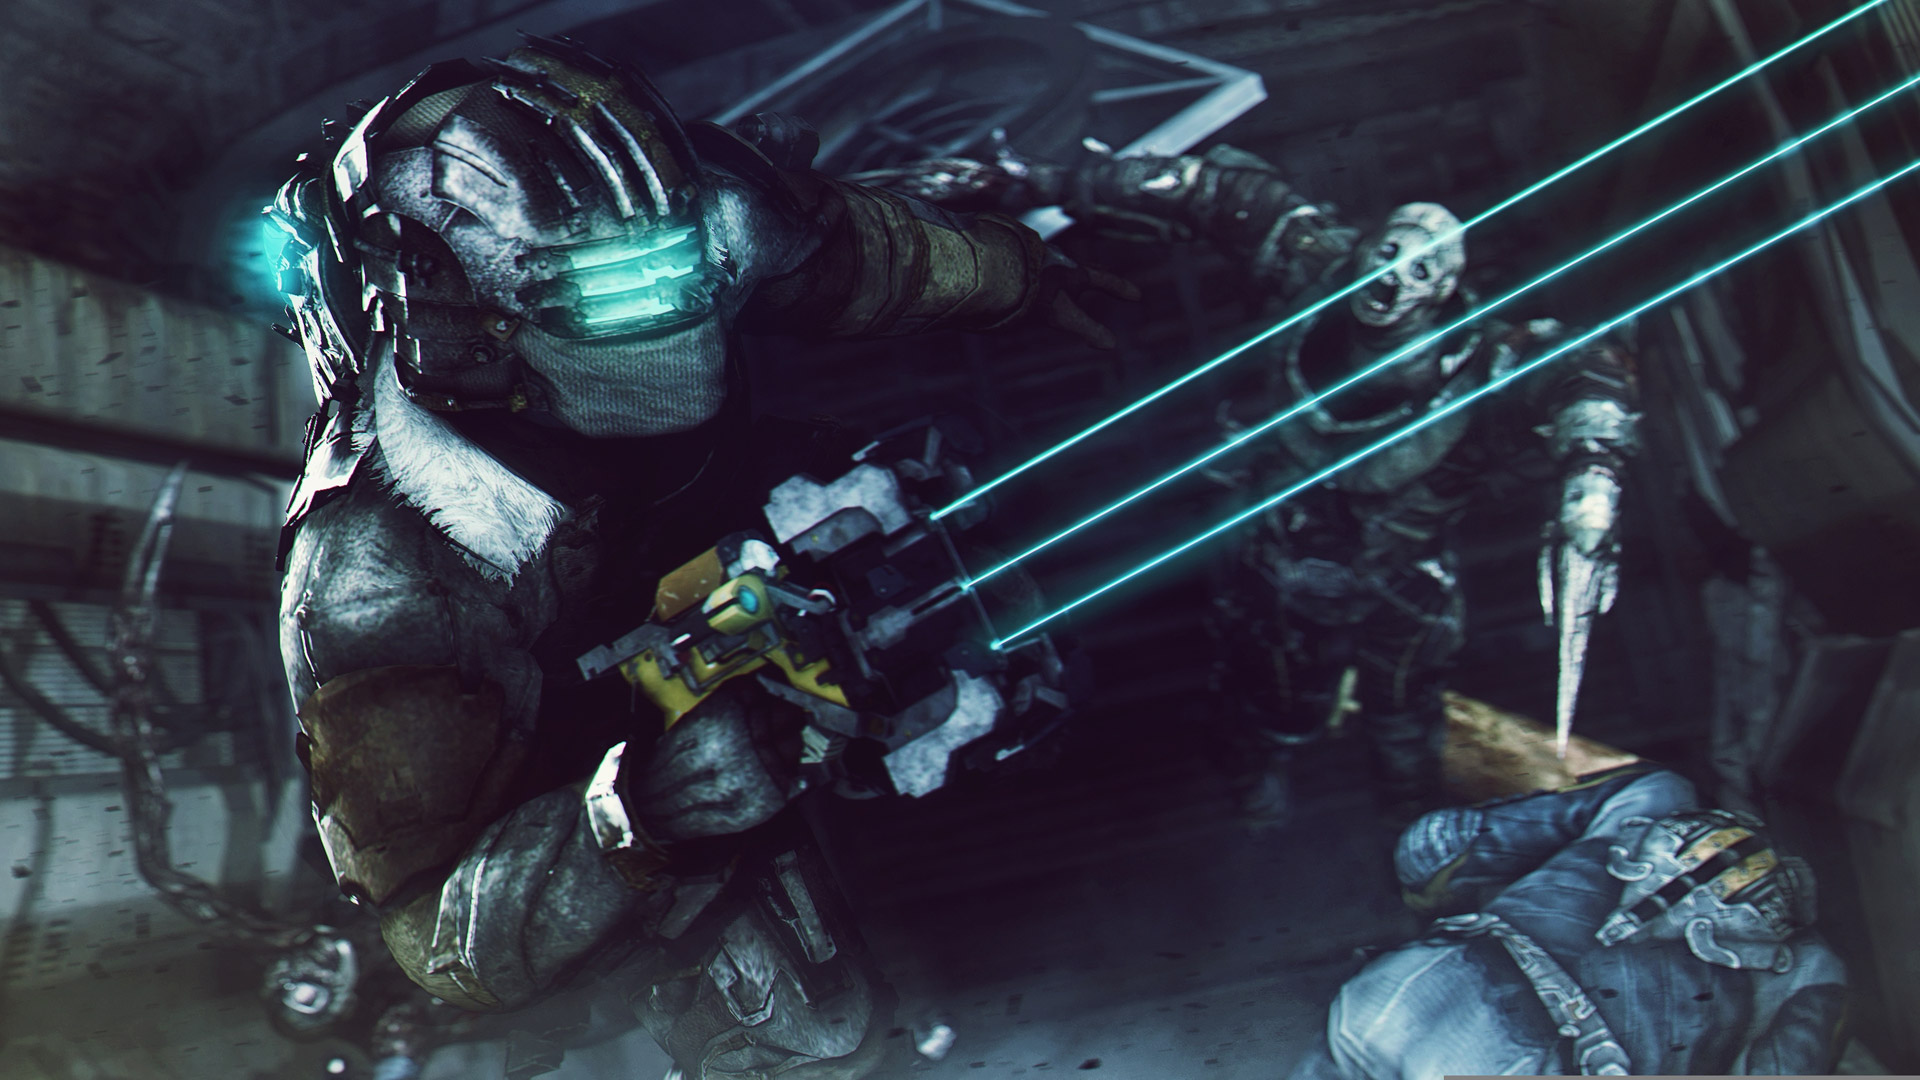 Dead Space 3 Wallpaper in 1920x1080